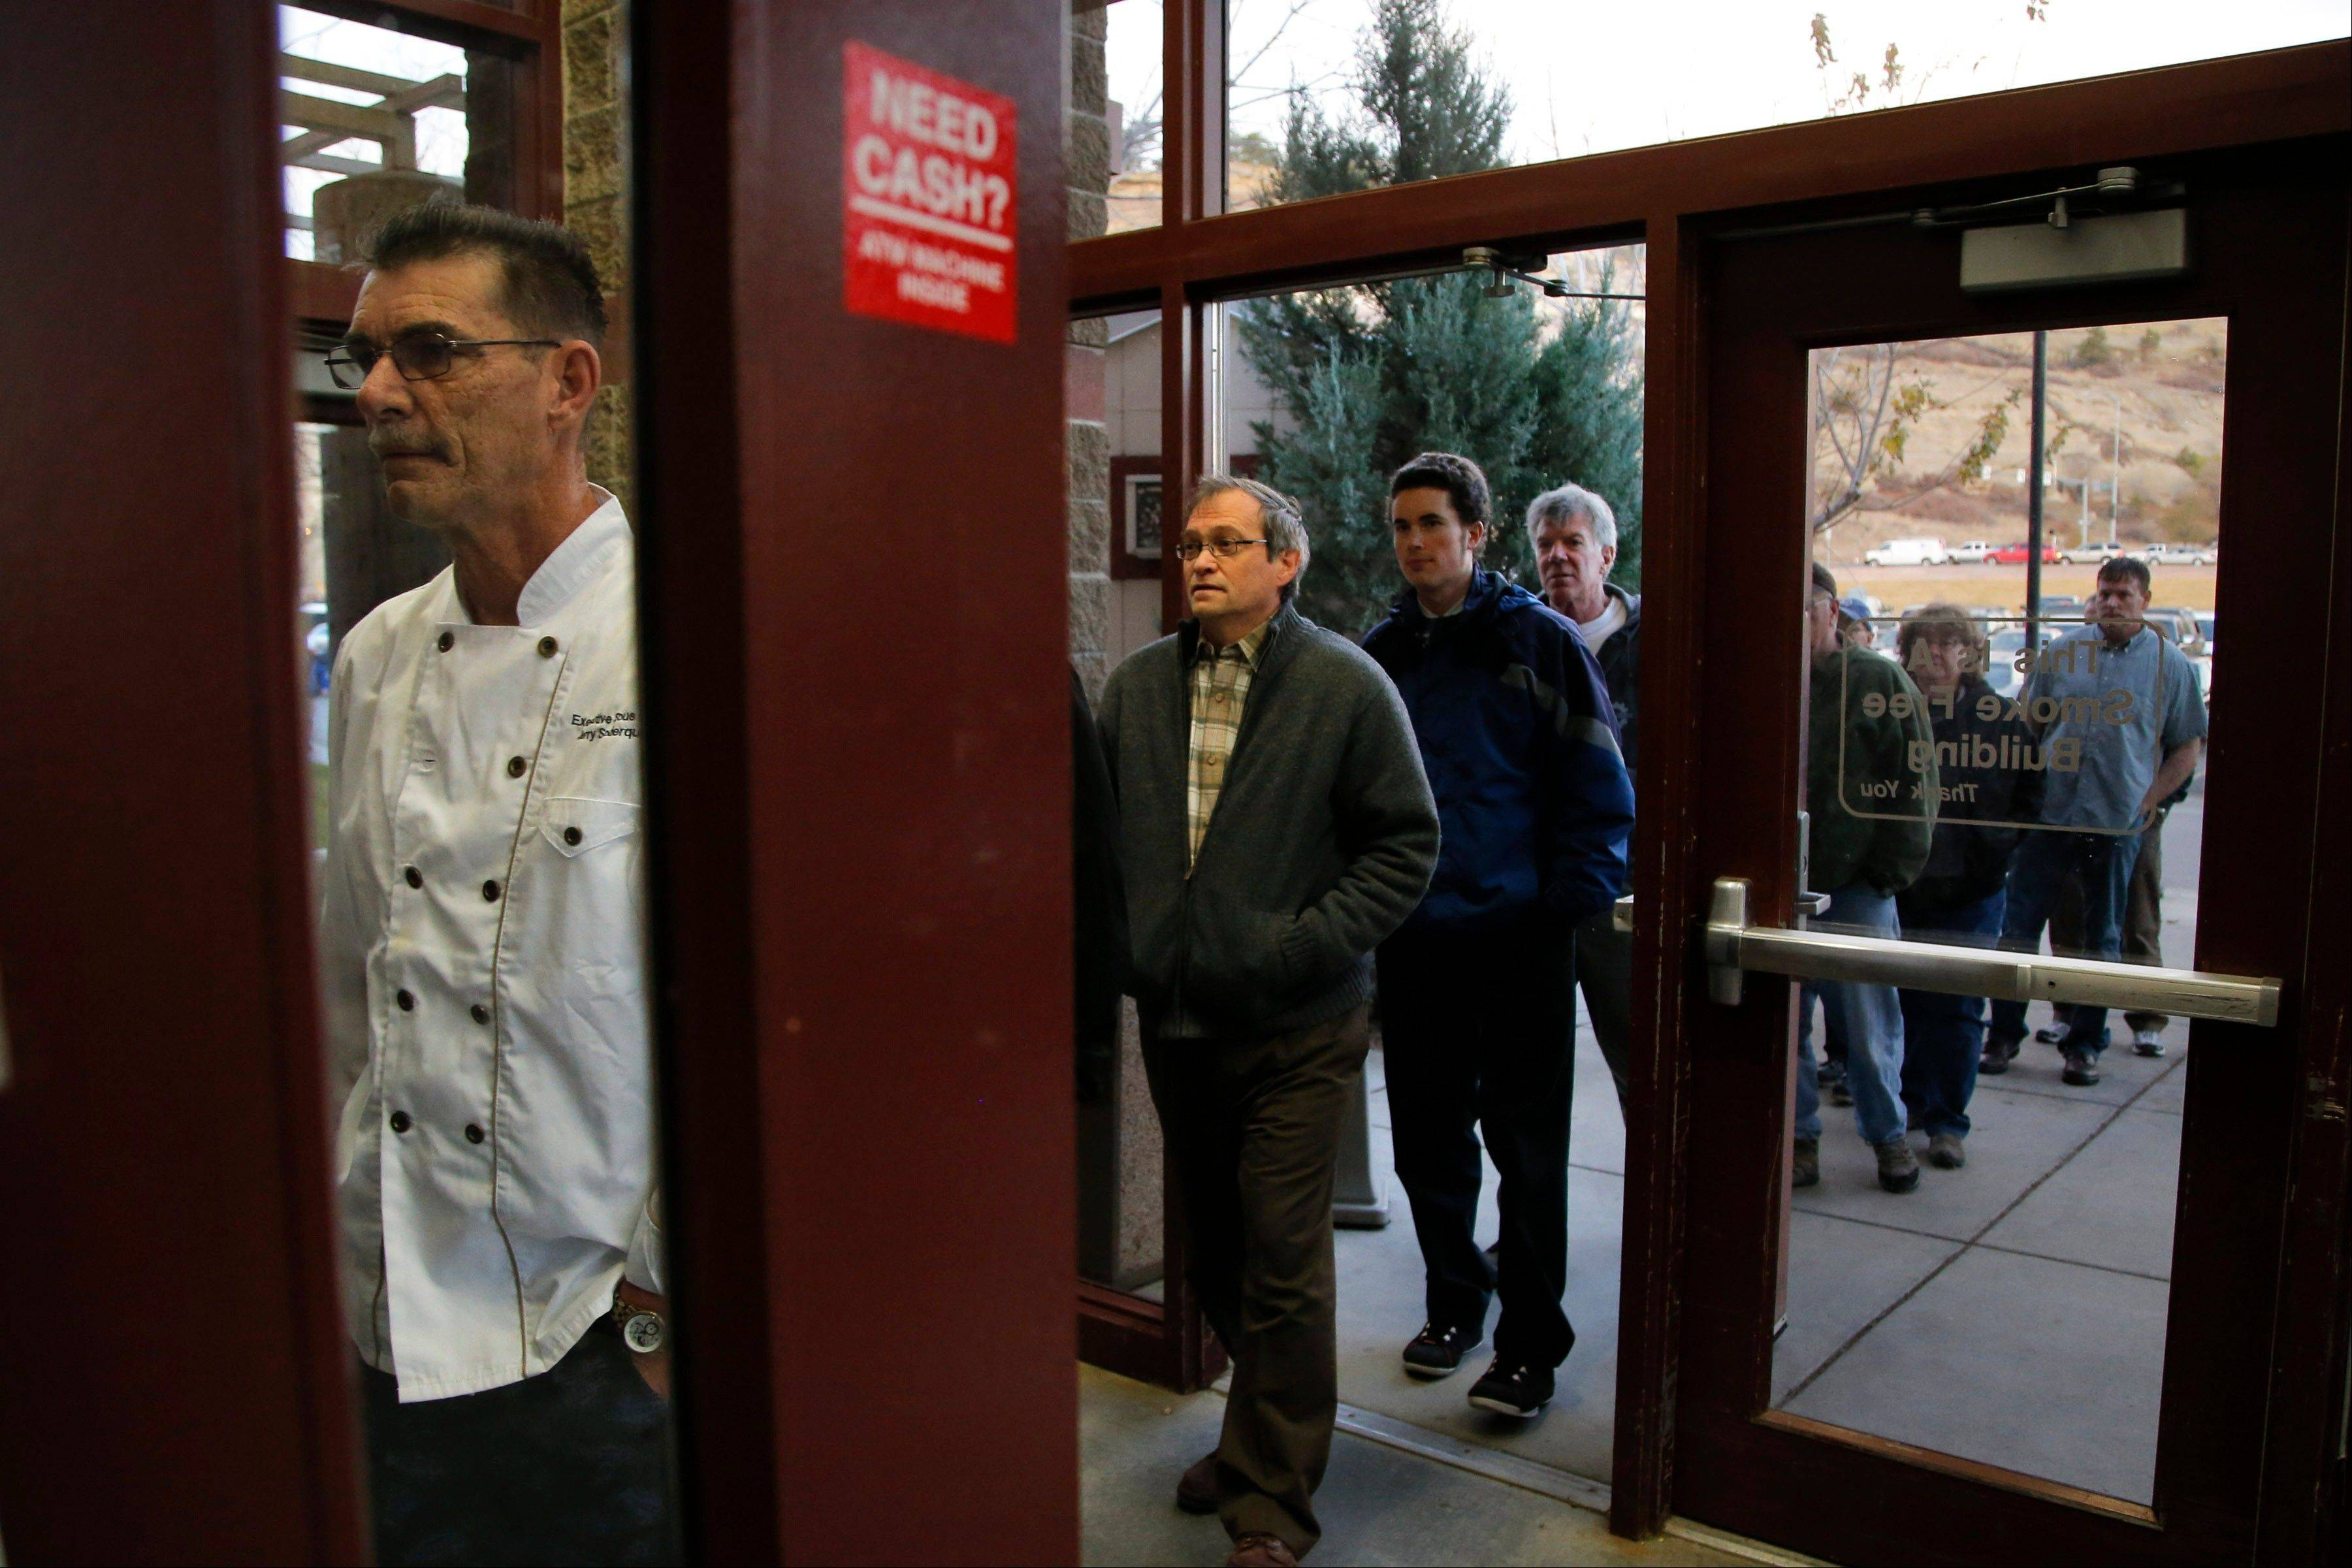 Voters wait in line to vote at a polling place on Election Day in Billings, Mont., Tuesday, Nov. 6, 2012.